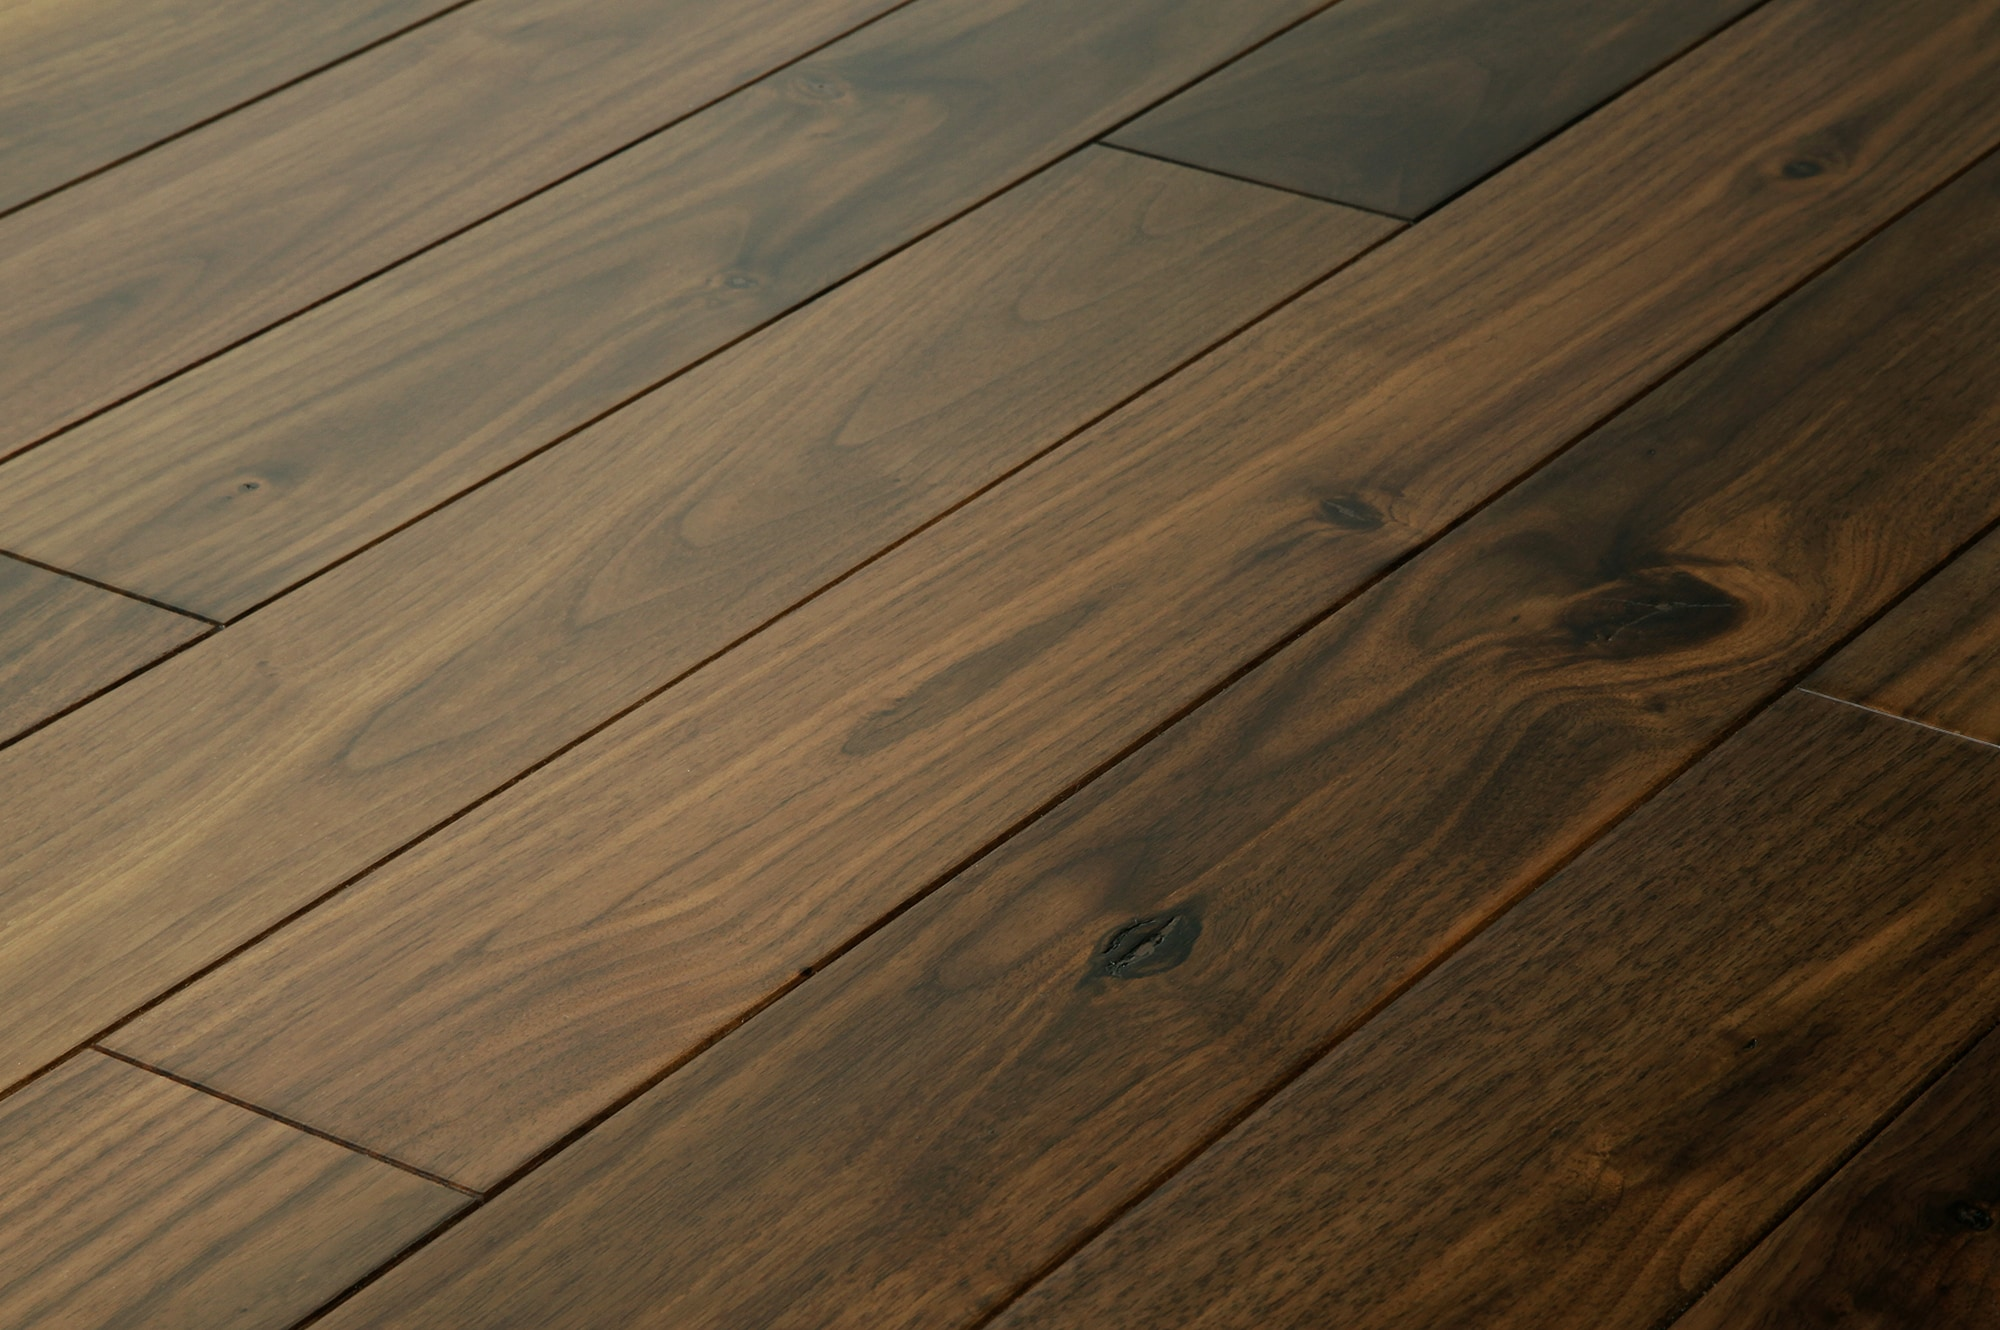 Jasper hardwood prefinished american black walnut for Walnut hardwood flooring